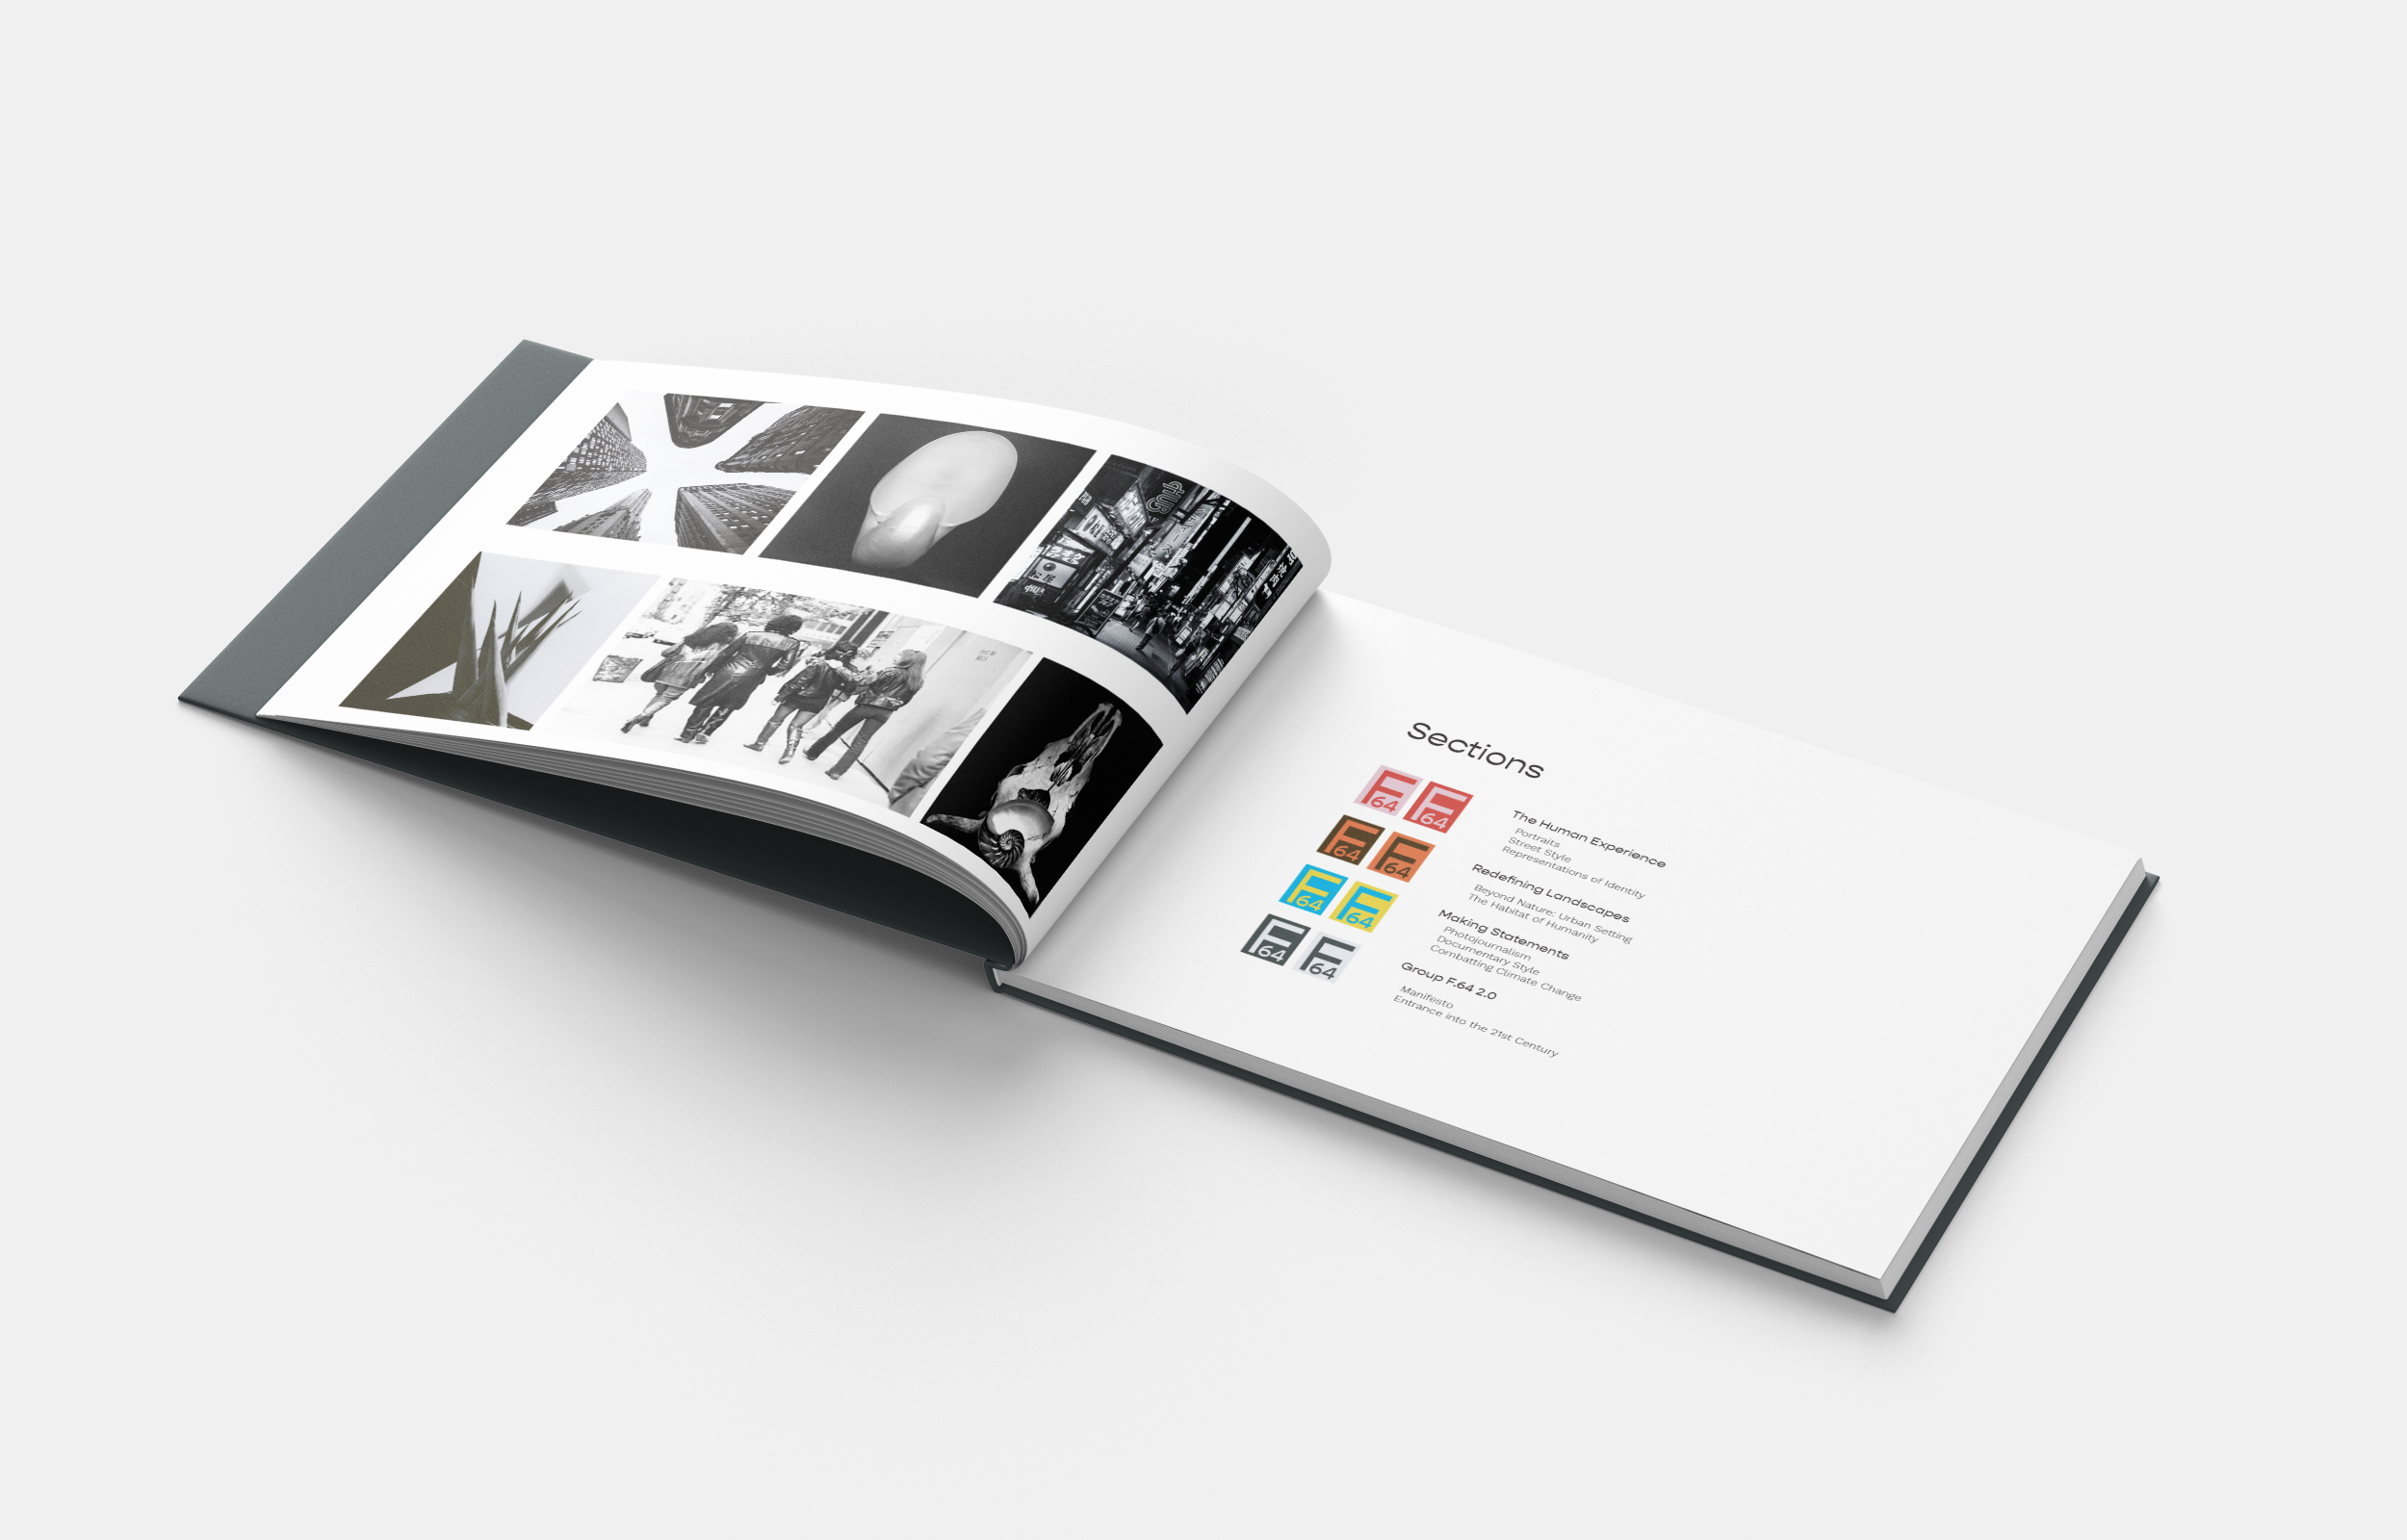 Supplemental book overviewing group and photography shift, outlining sections